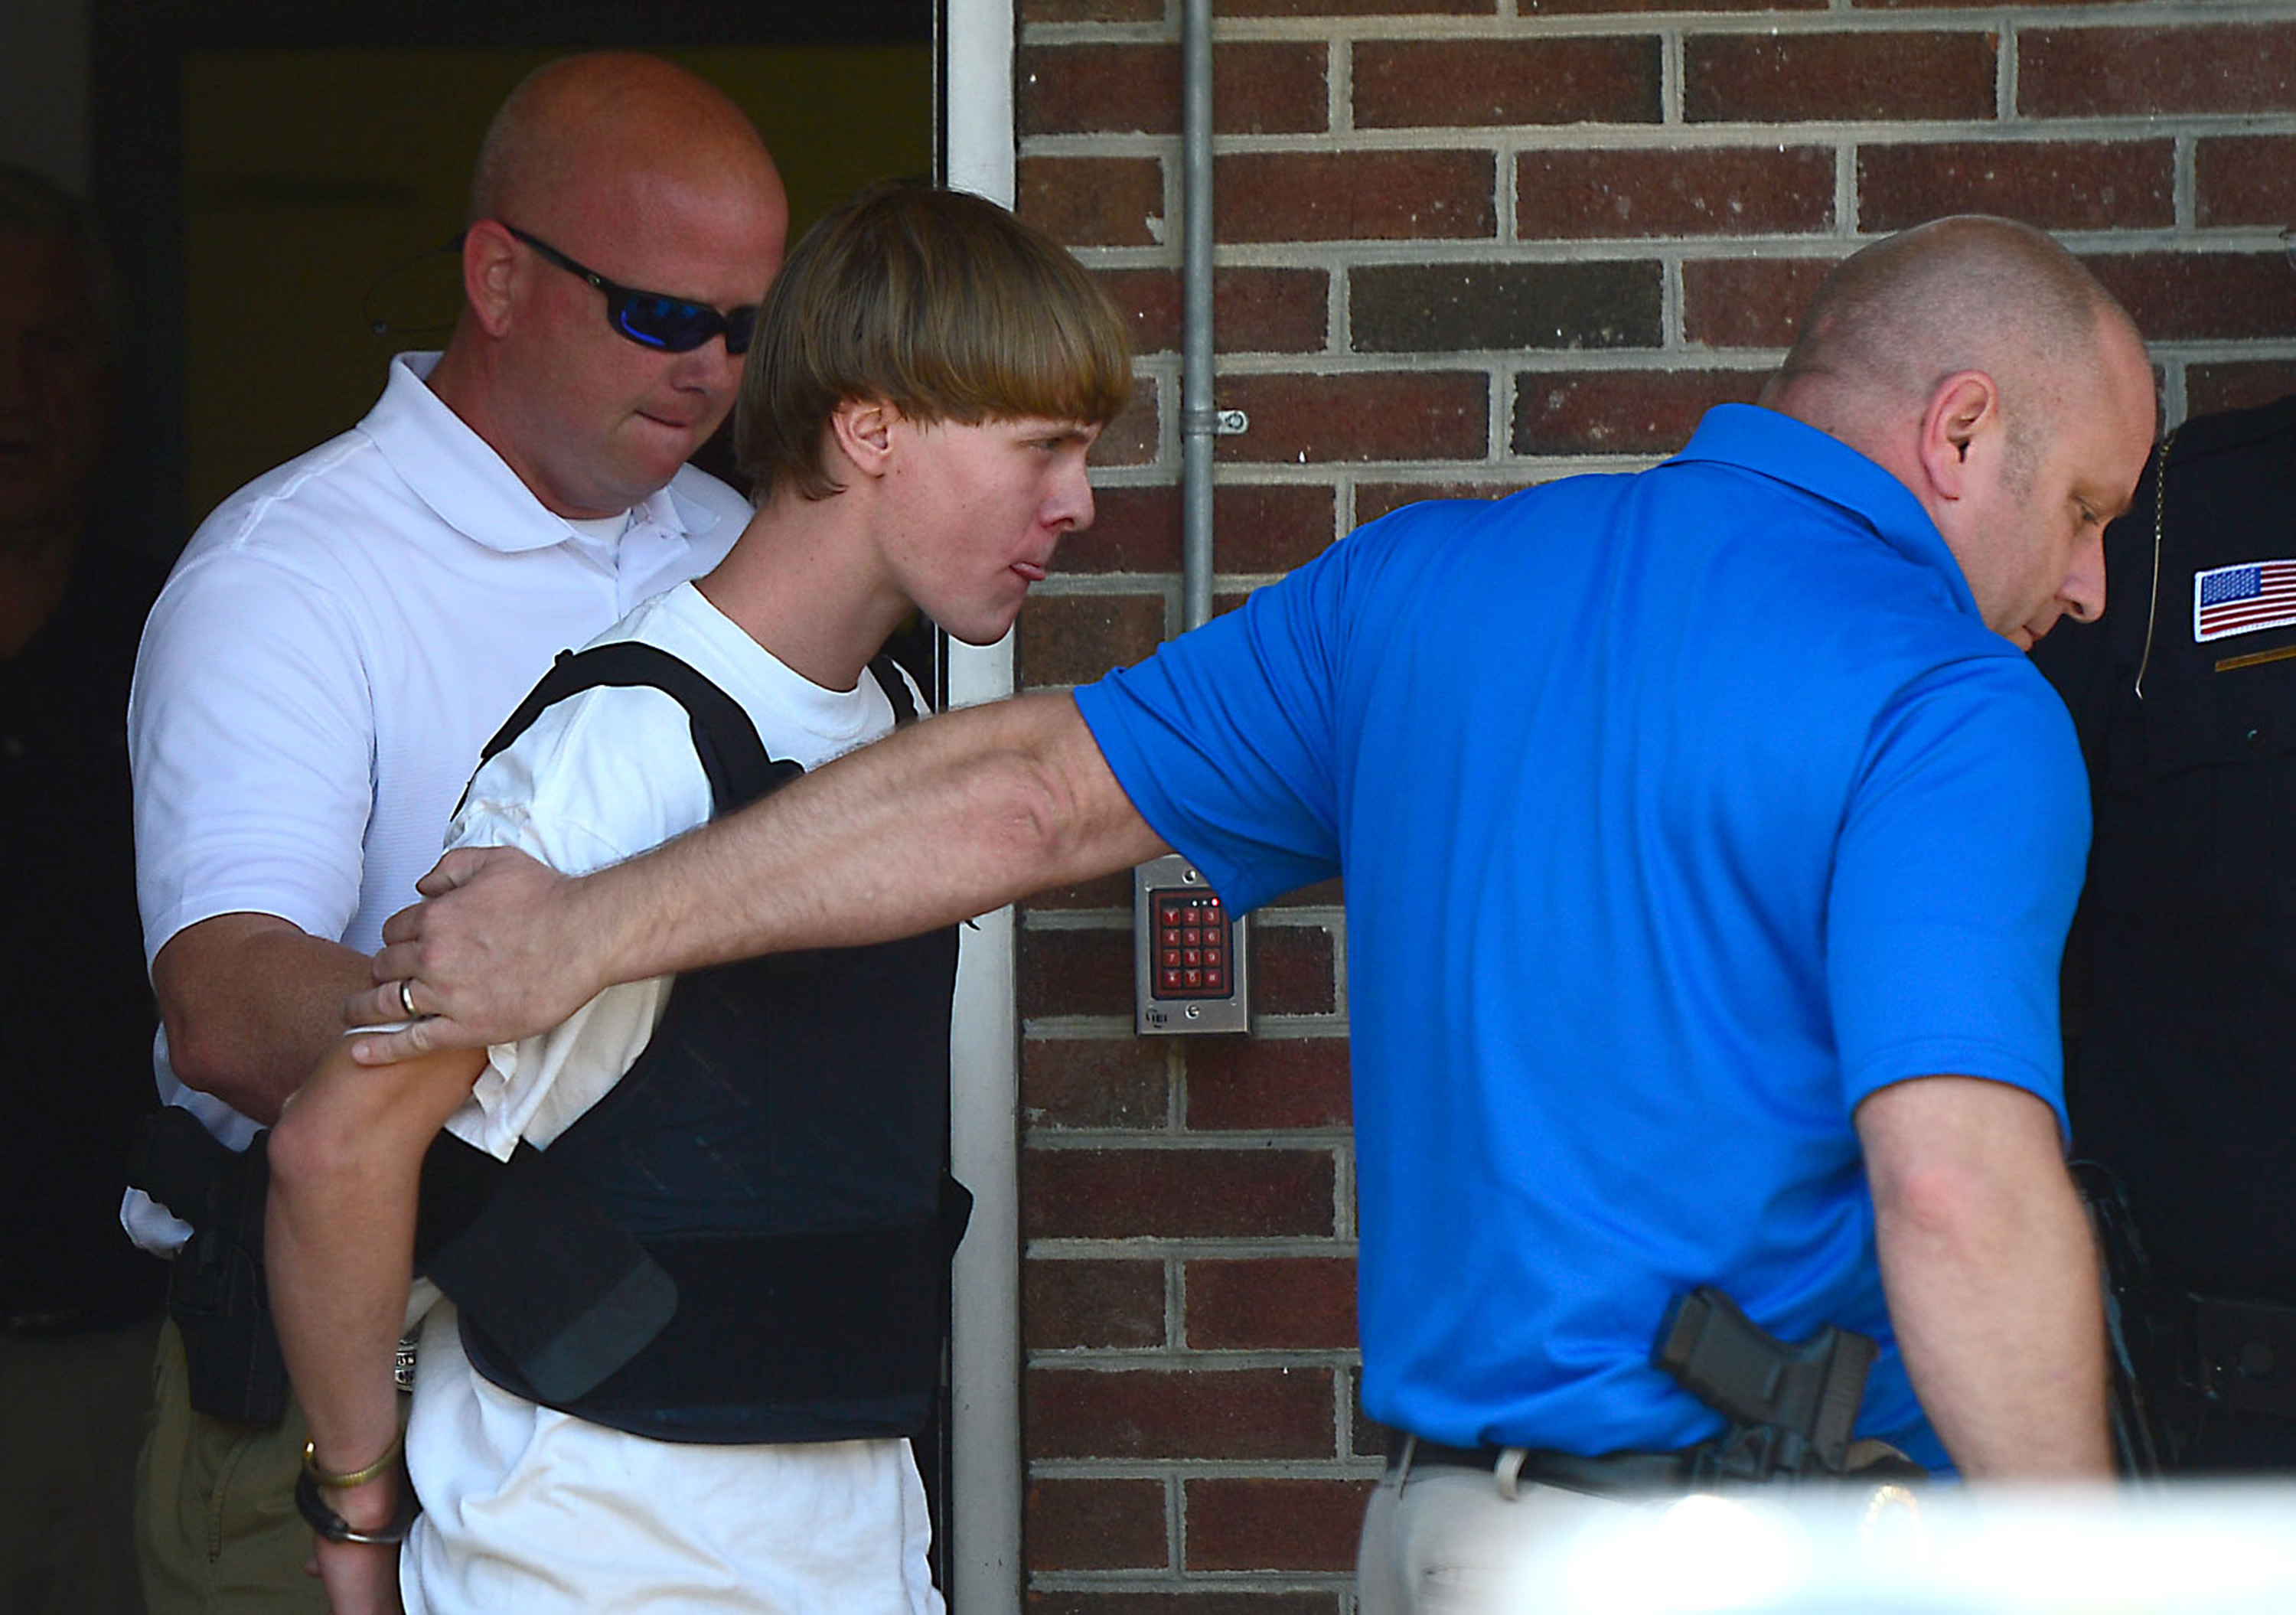 Charleston shooting suspect Dylann Roof is escorted from the Shelby Police Dept. Thursday, June 18, 2015 in Shelby, S.C.